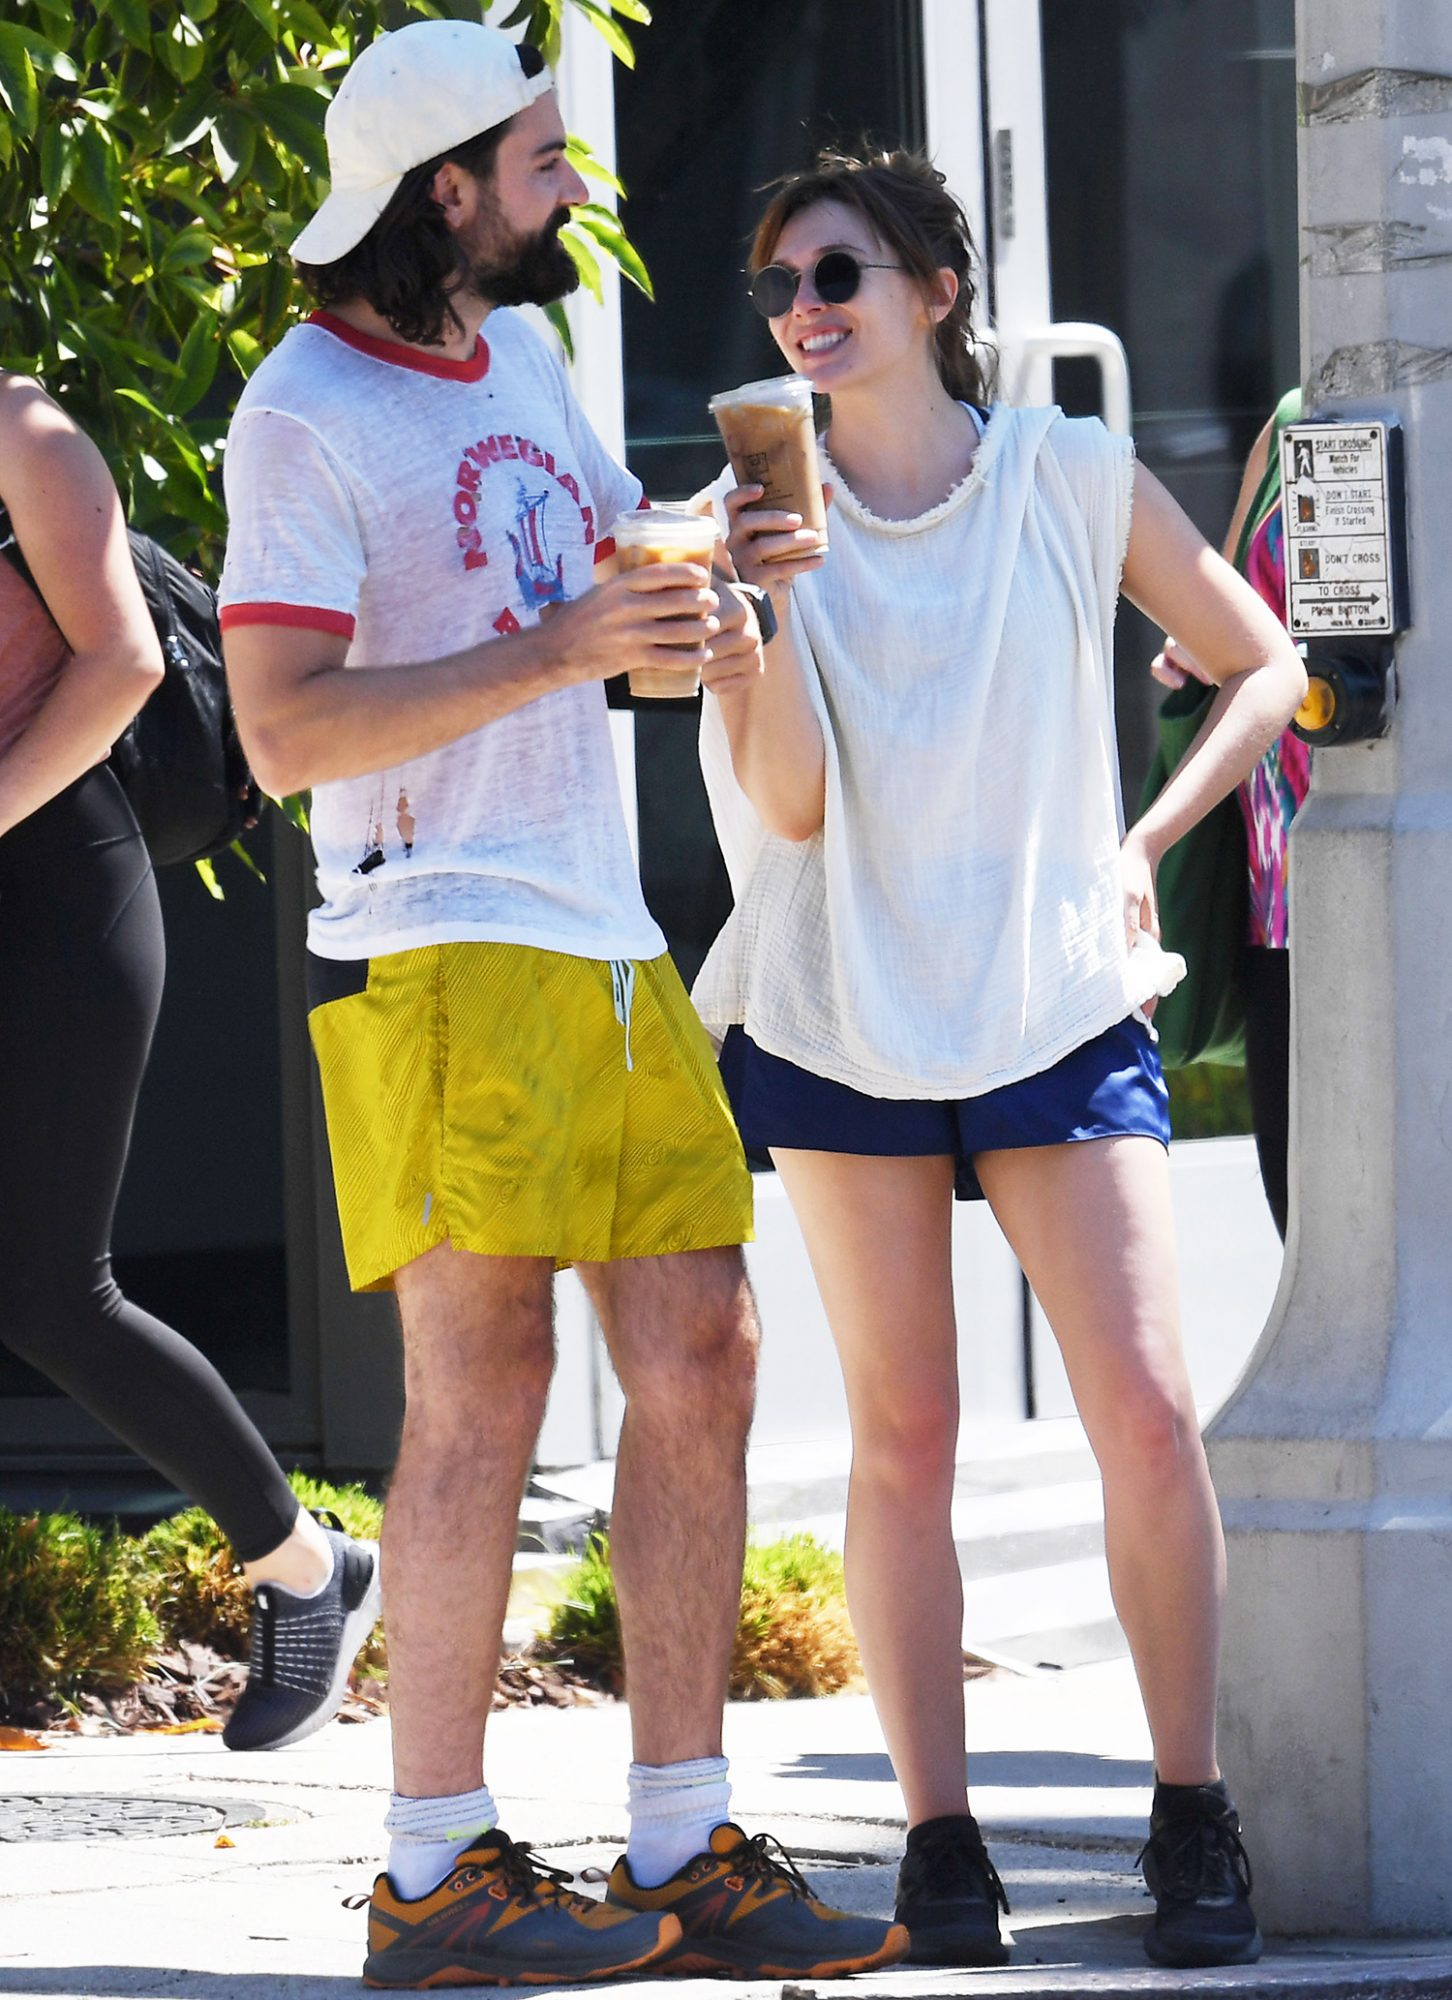 Elizabeth Olsen and Robbie Arnett in L.A. were getting coffee after exercising together leading up to their Fourth of July weekend holiday on July 02, 2021.